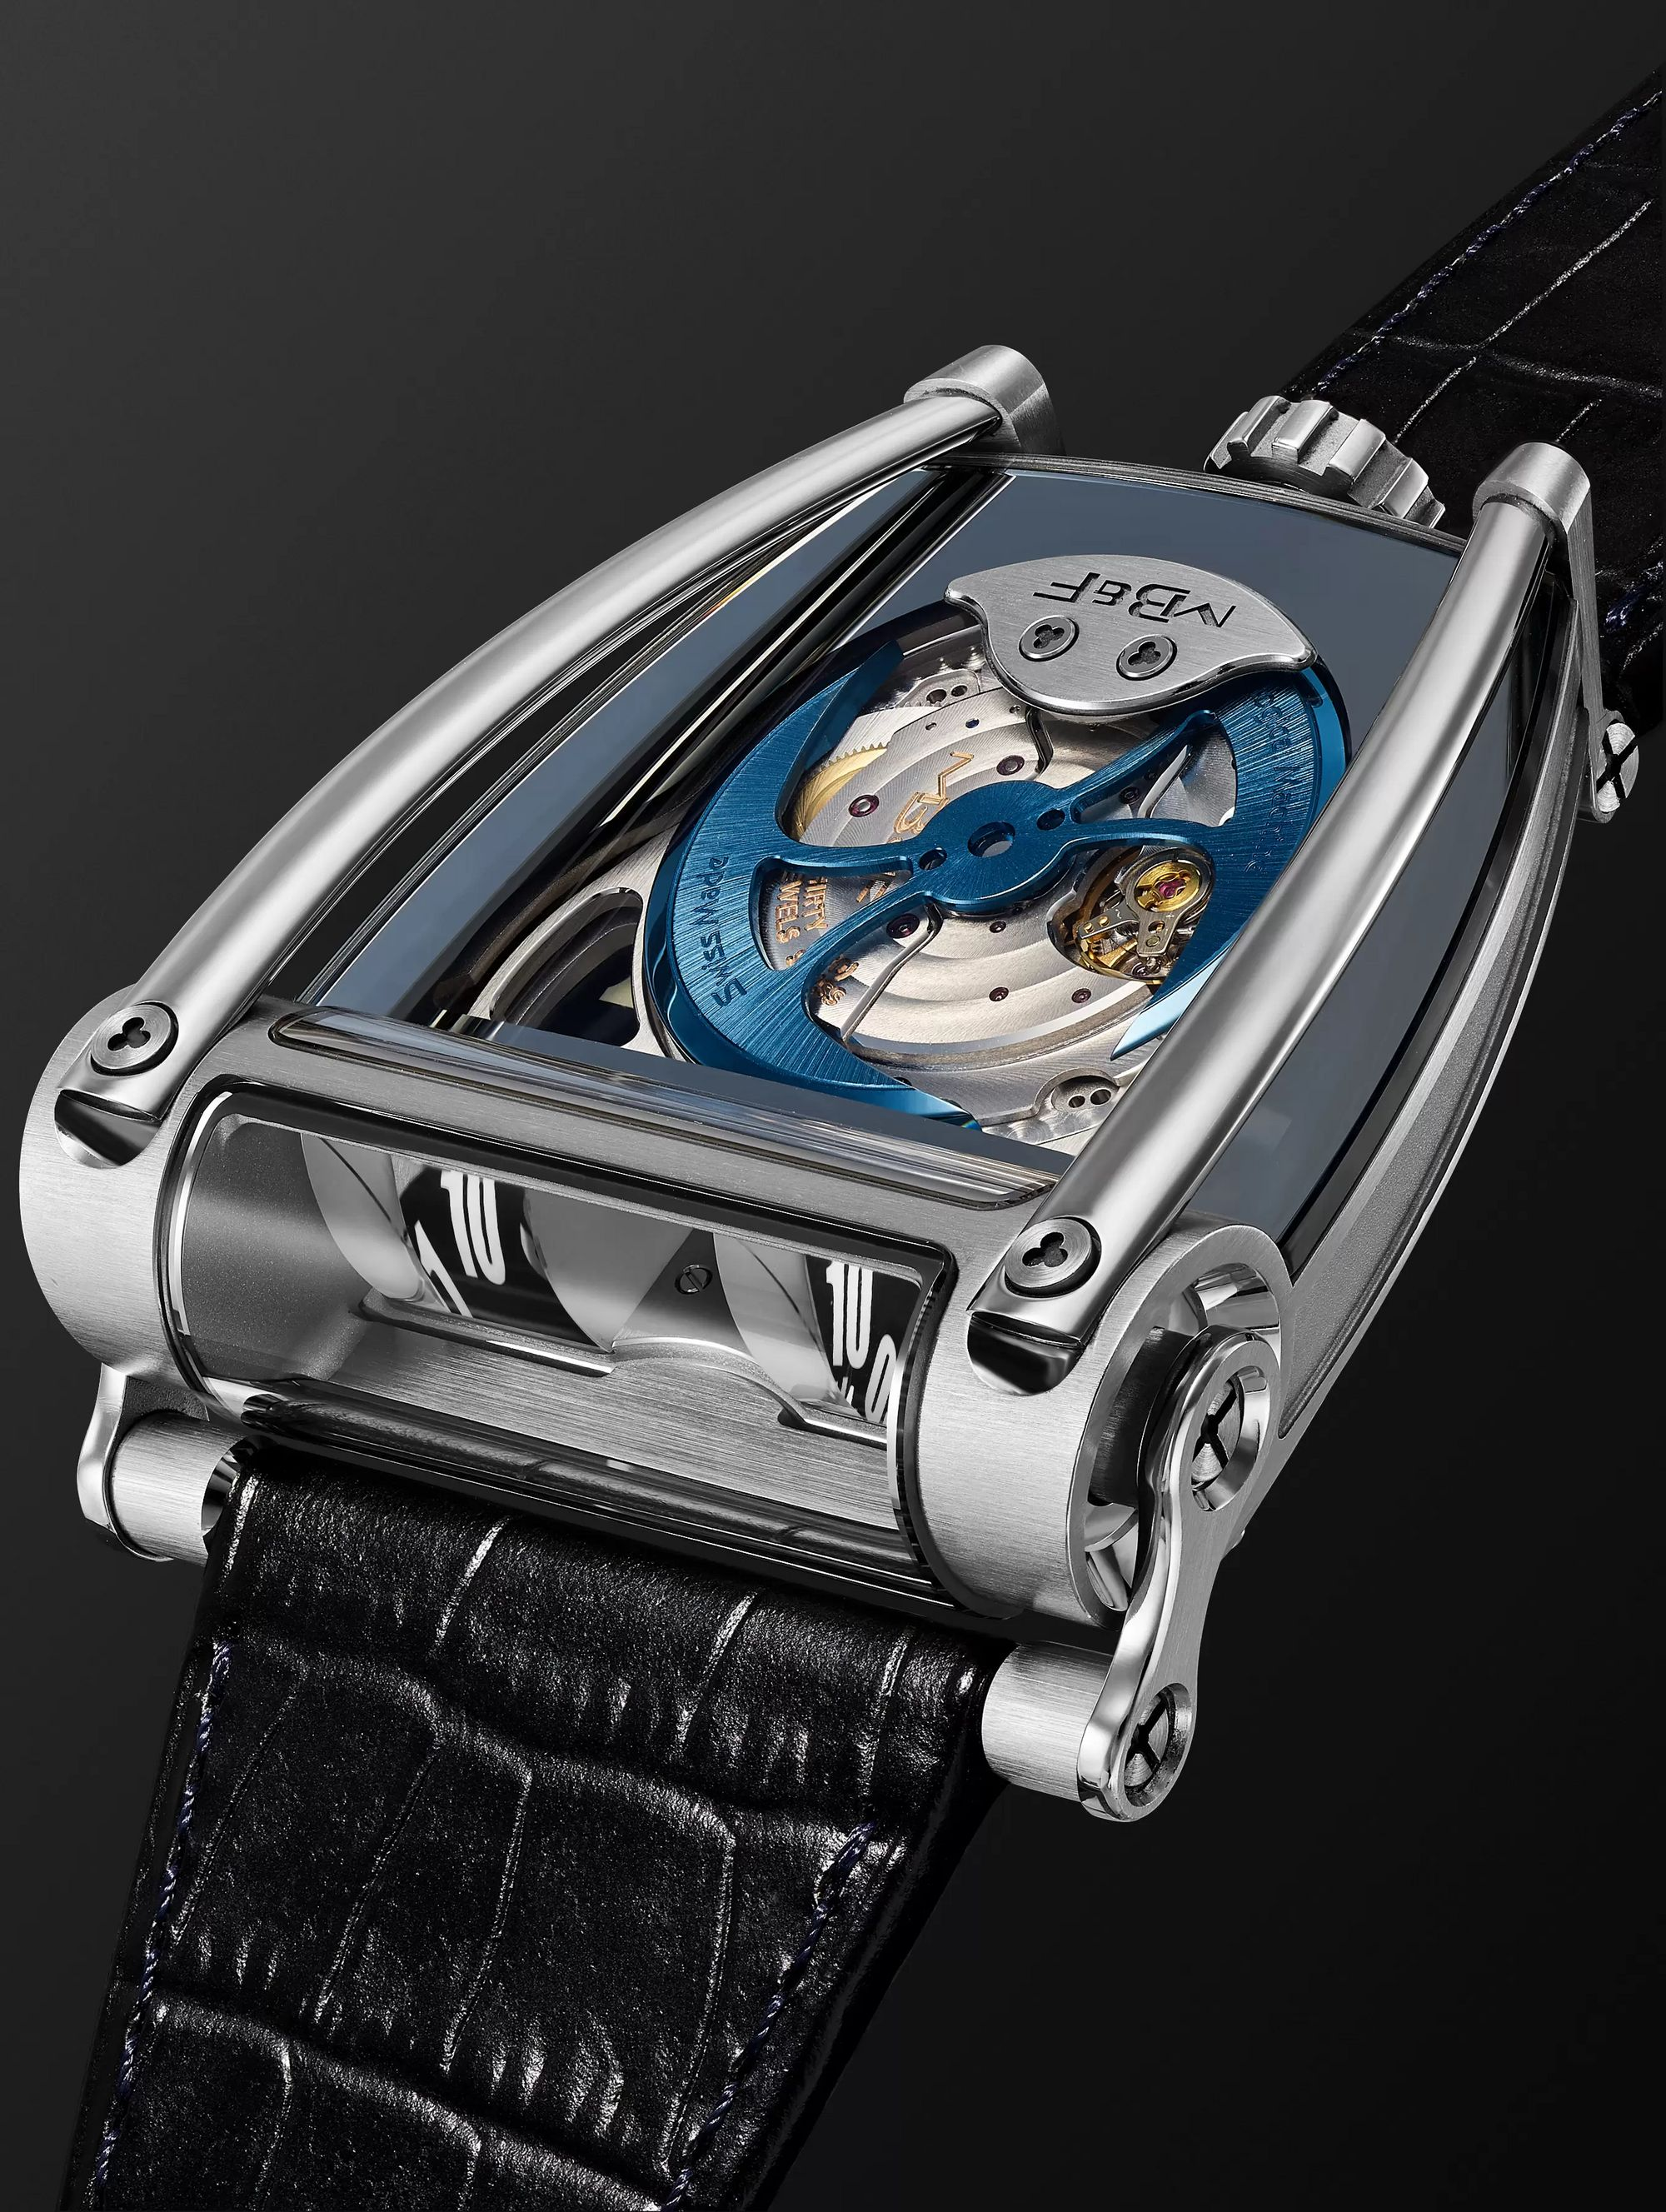 MB&F HM8 Can-Am Automatic 51.5mm White Gold, Titanium and Croc-Effect Leather Watch